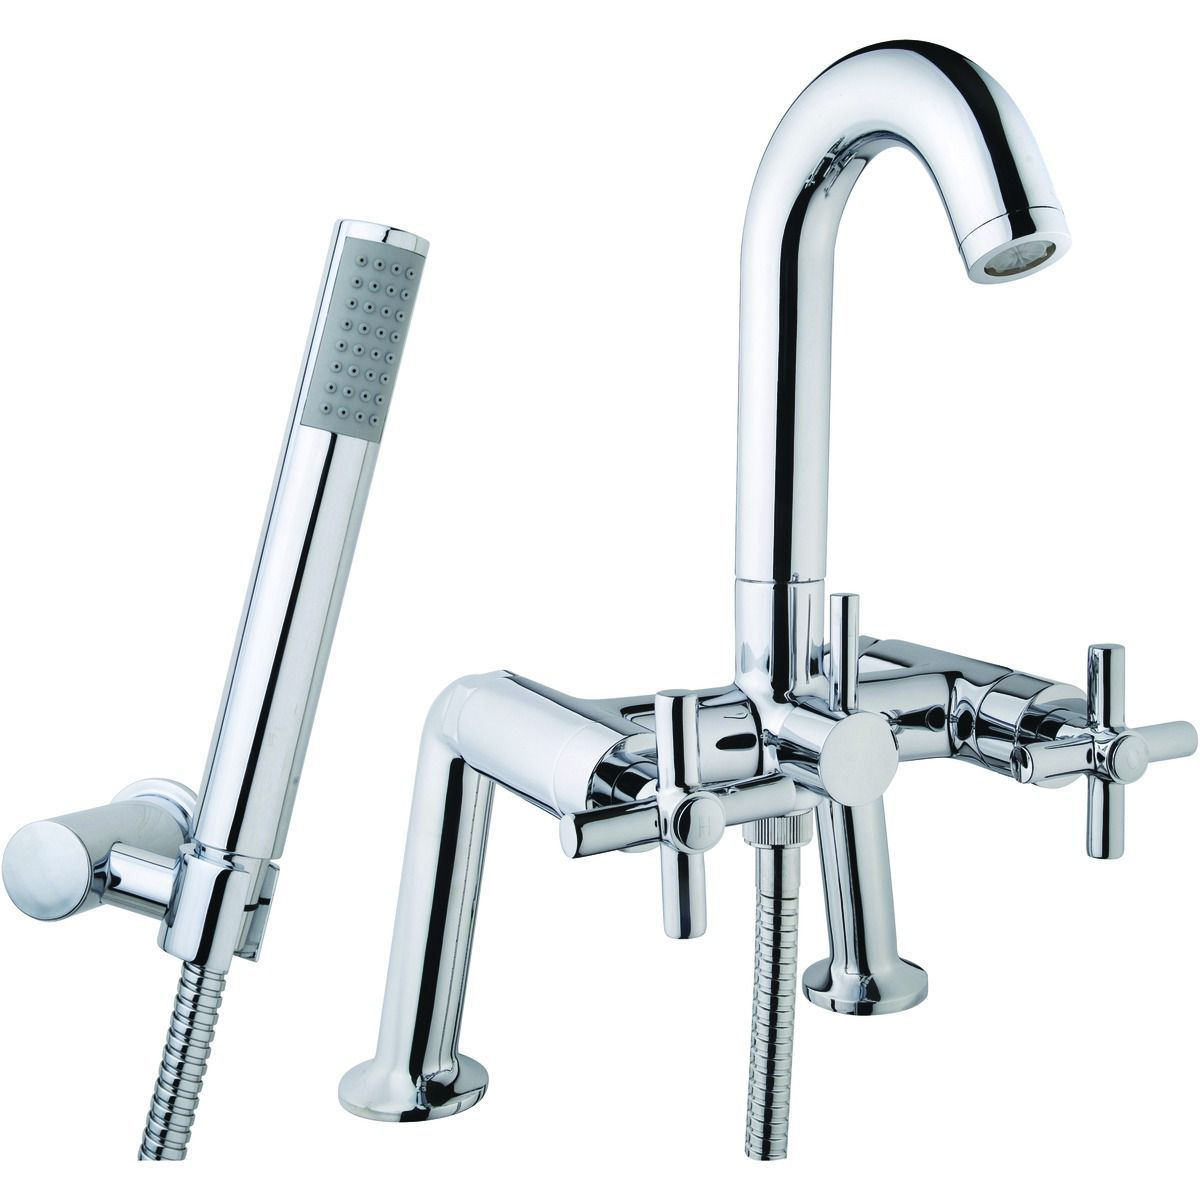 Wickes Anvil Bath Shower Mixer Chrome | Wickes.co.uk | New house ...